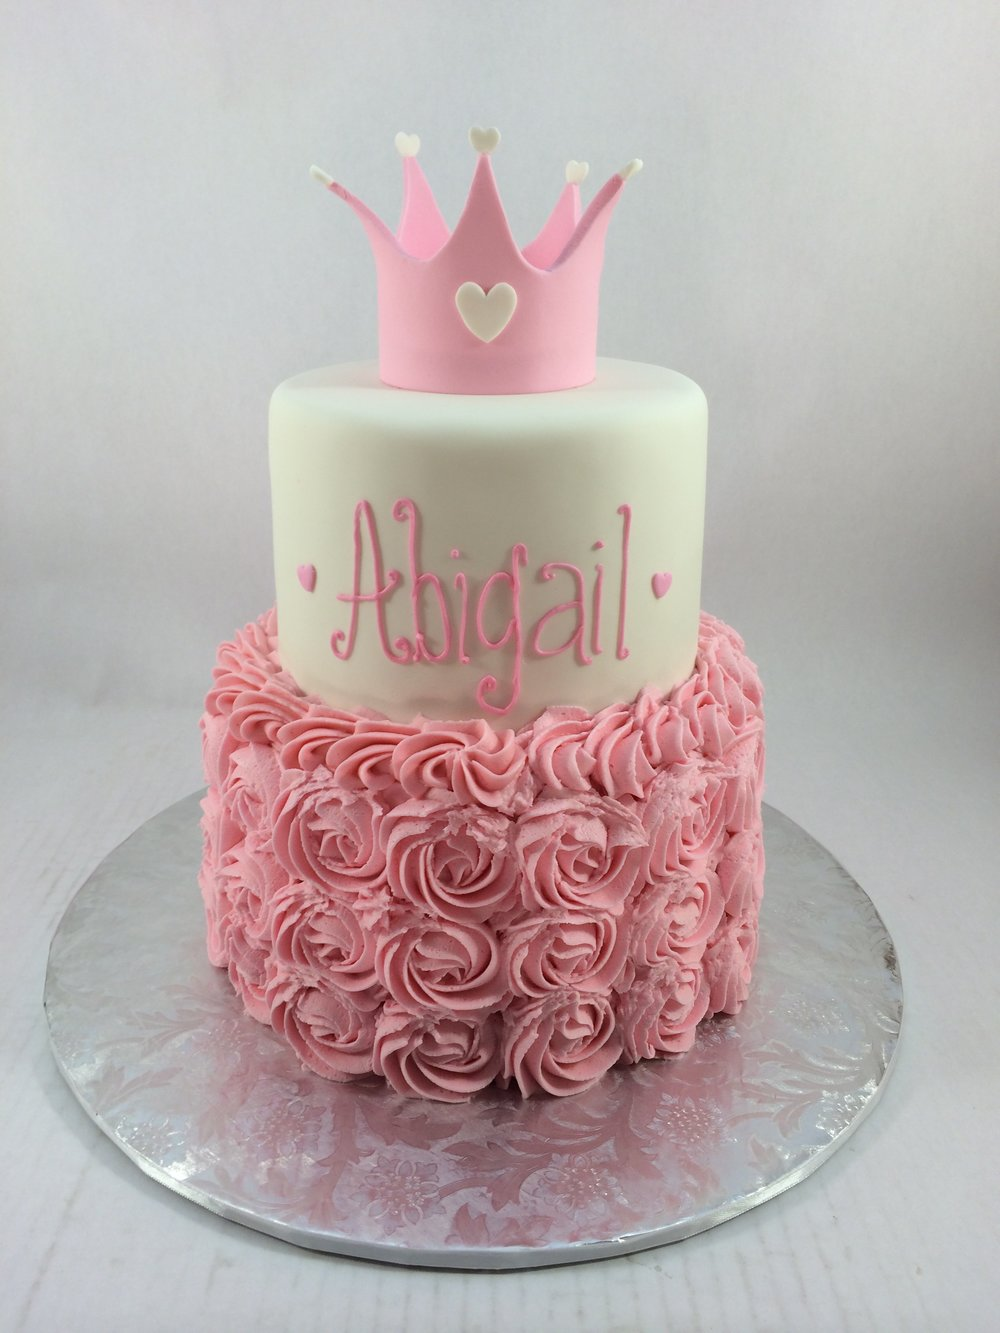 Cake abigail with crown.JPG